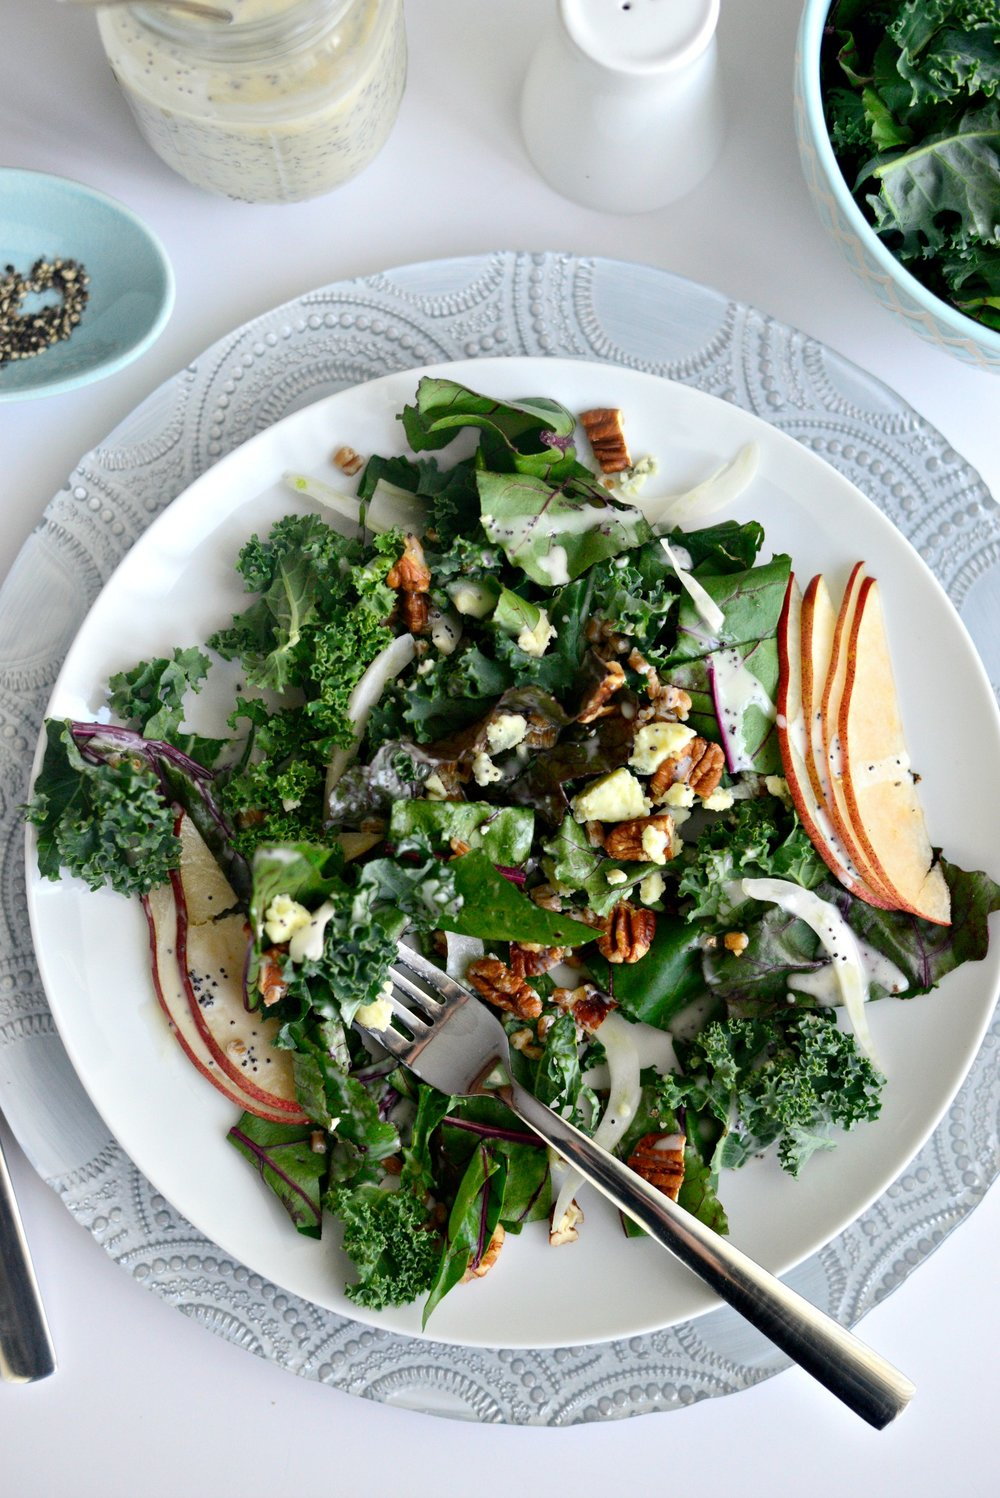 Winter-Kale-Beet-Greens-Salad-l-SimplyScratch.com-20.jpg